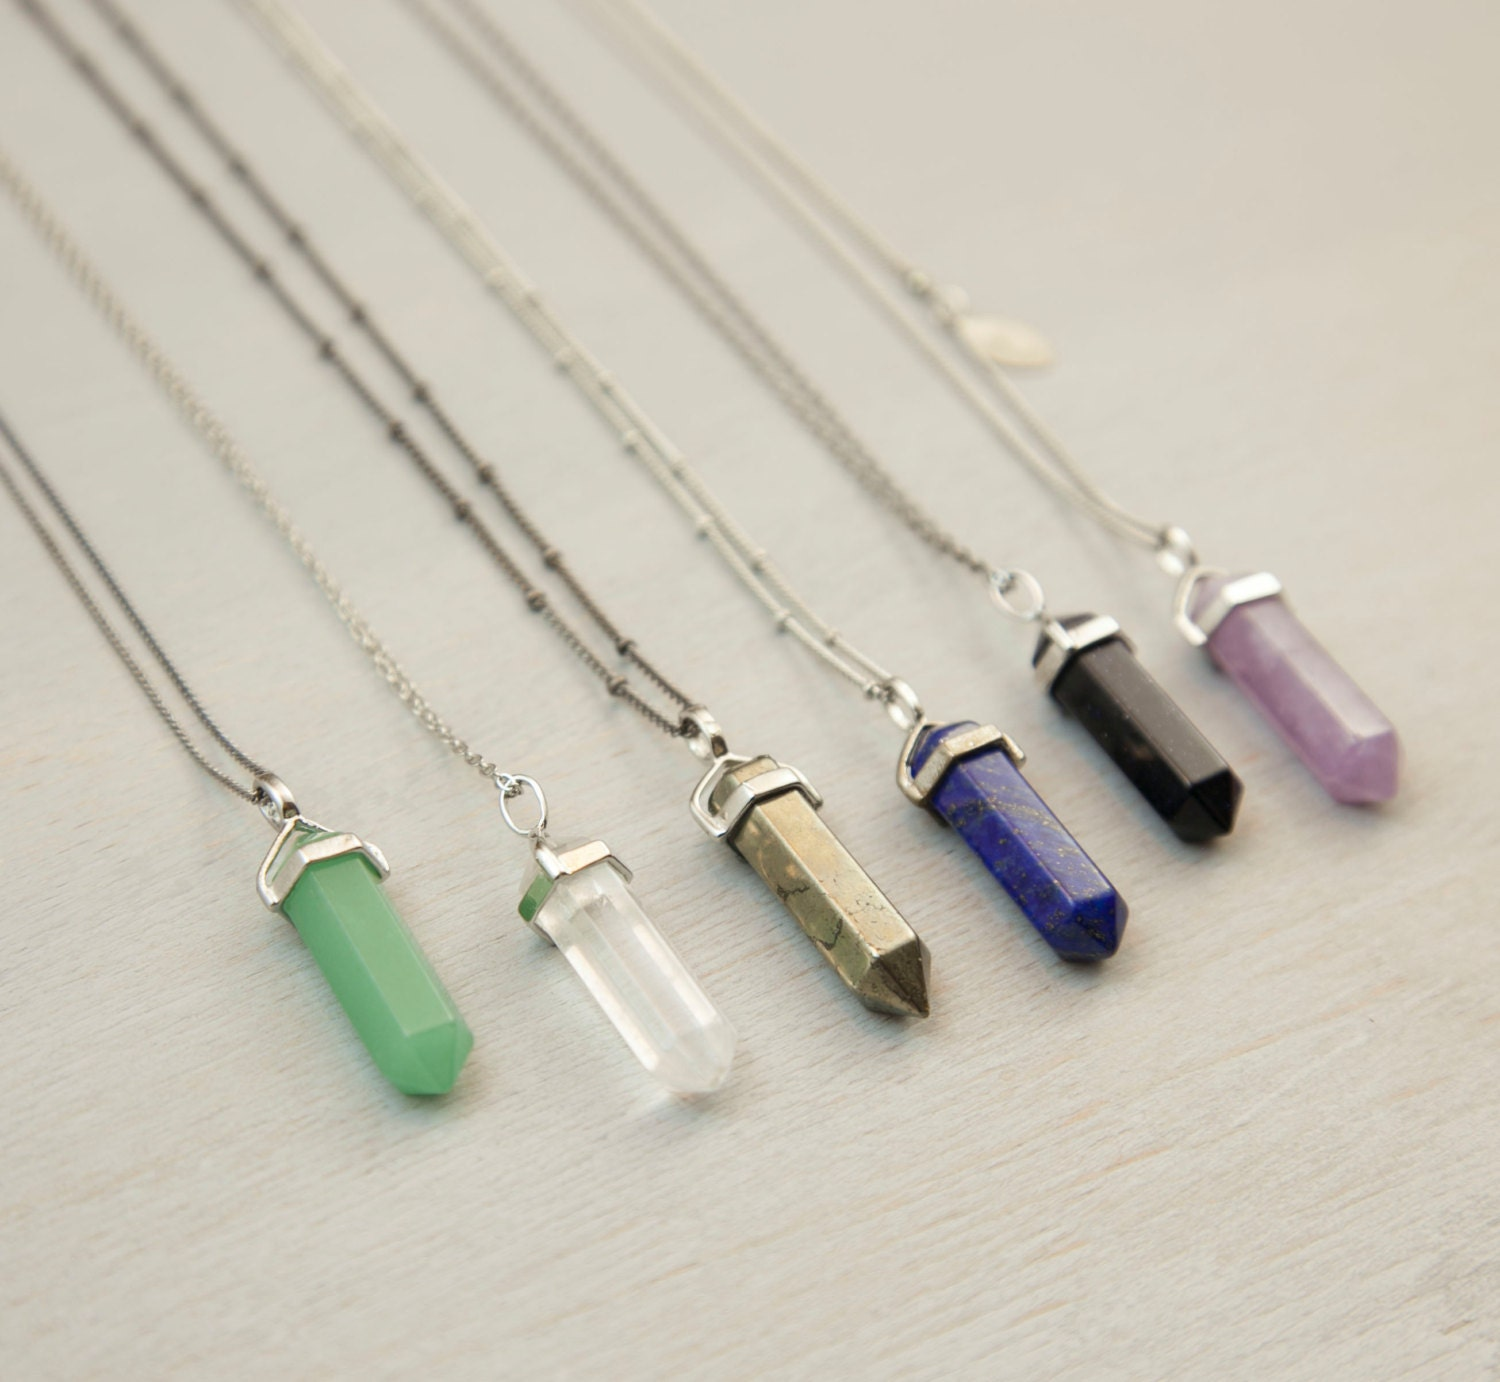 necklace bestbohojewels tassel stone leather necklaces com shop natural